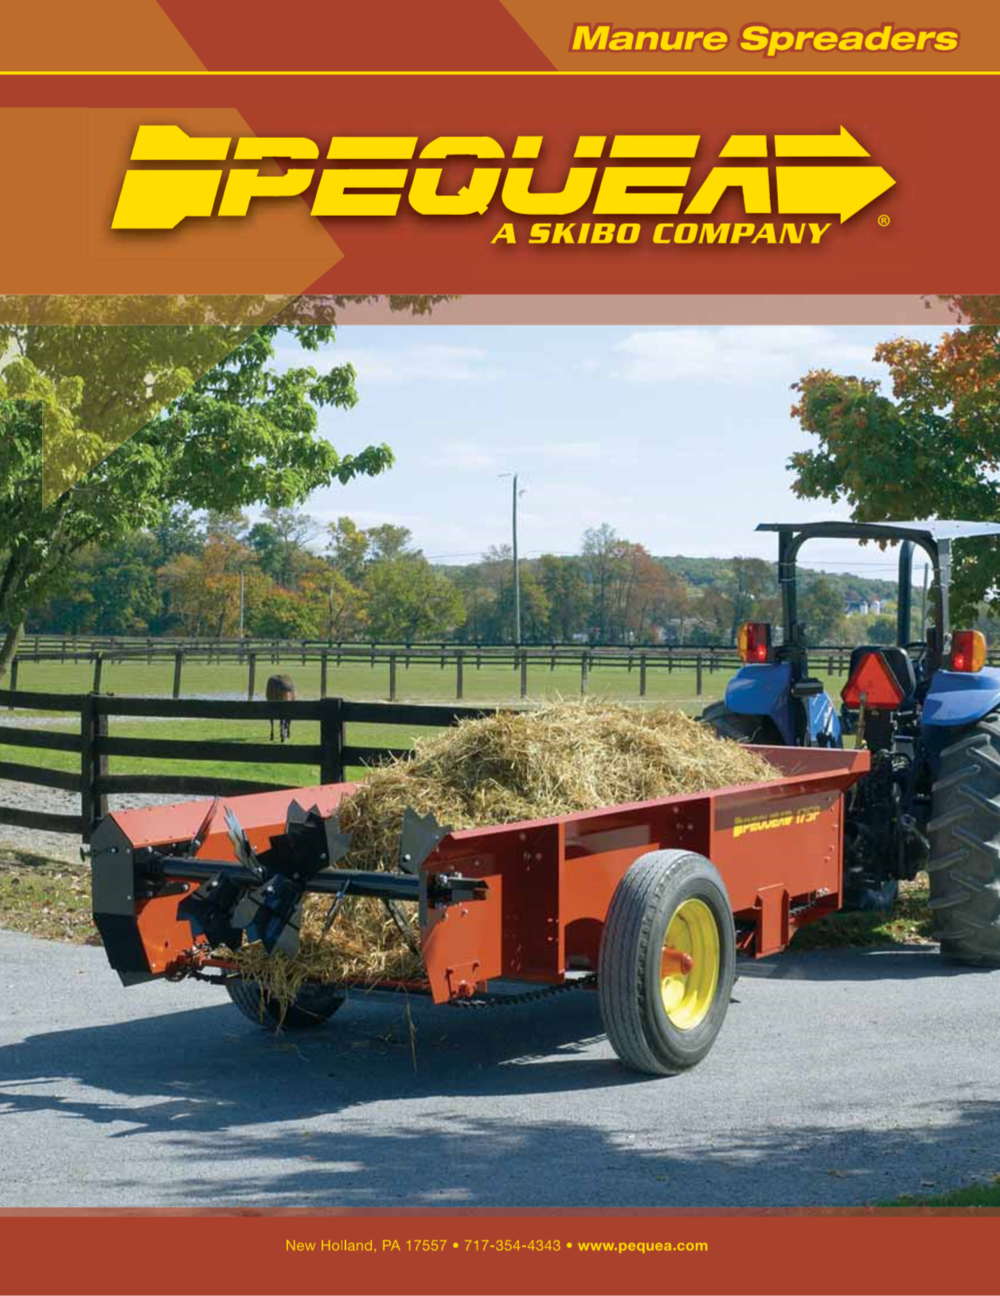 Manure Spreaders Brochure